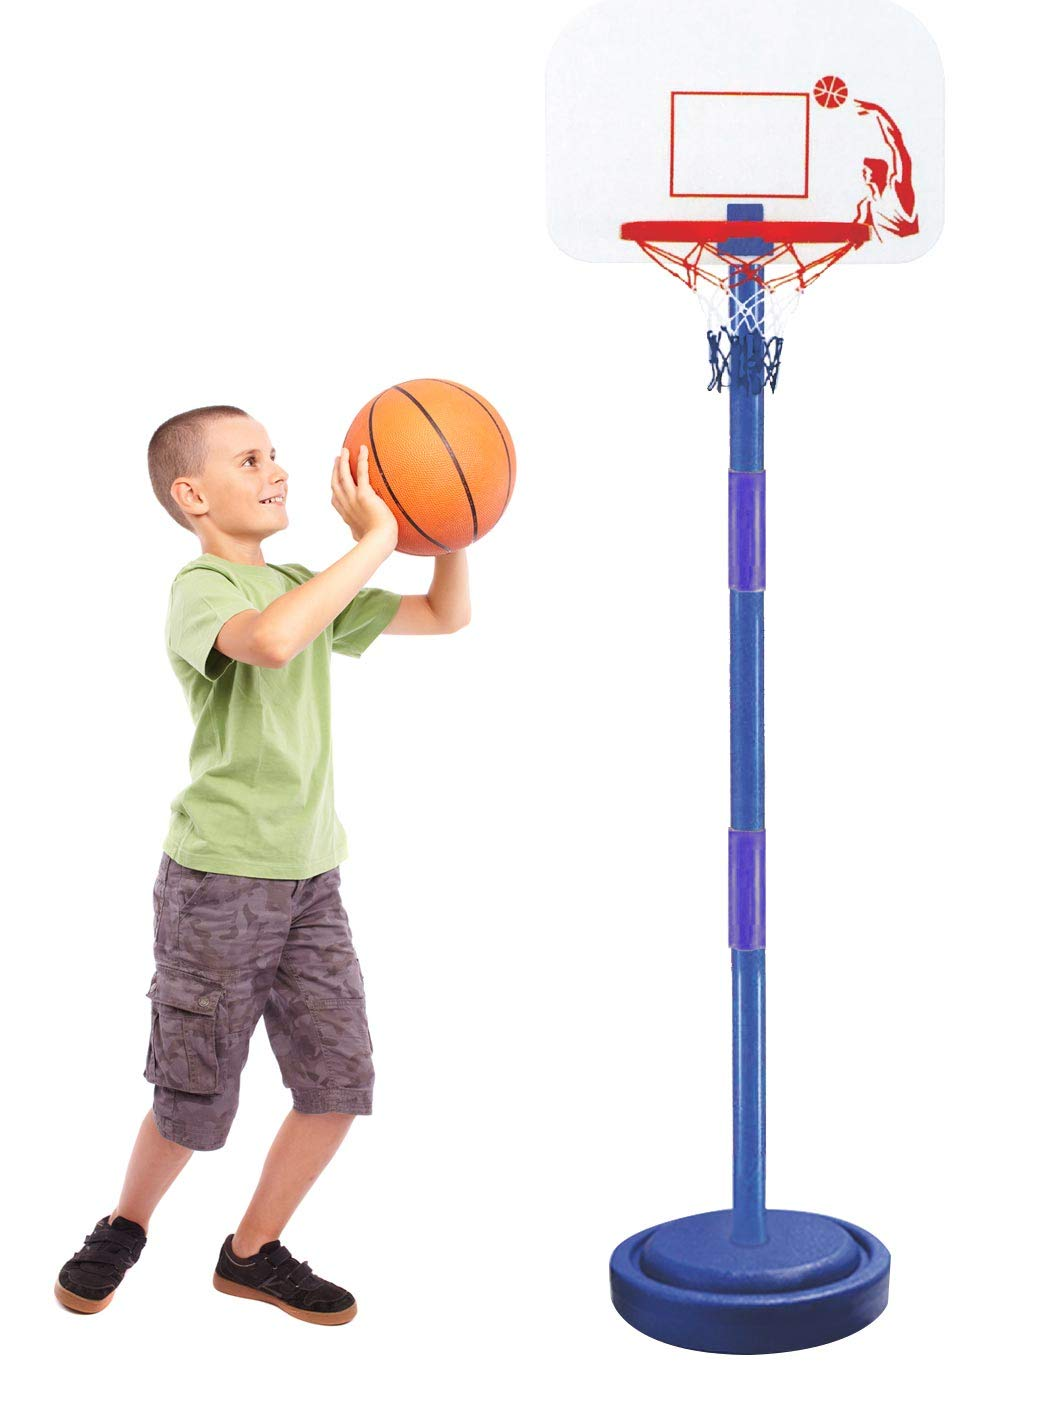 Ages 3-7 Basketball Hoop Adjustable Portable Childs Throwing Tossing Garden Fun Game Free Standing Set for Kids Indoor Outdoor